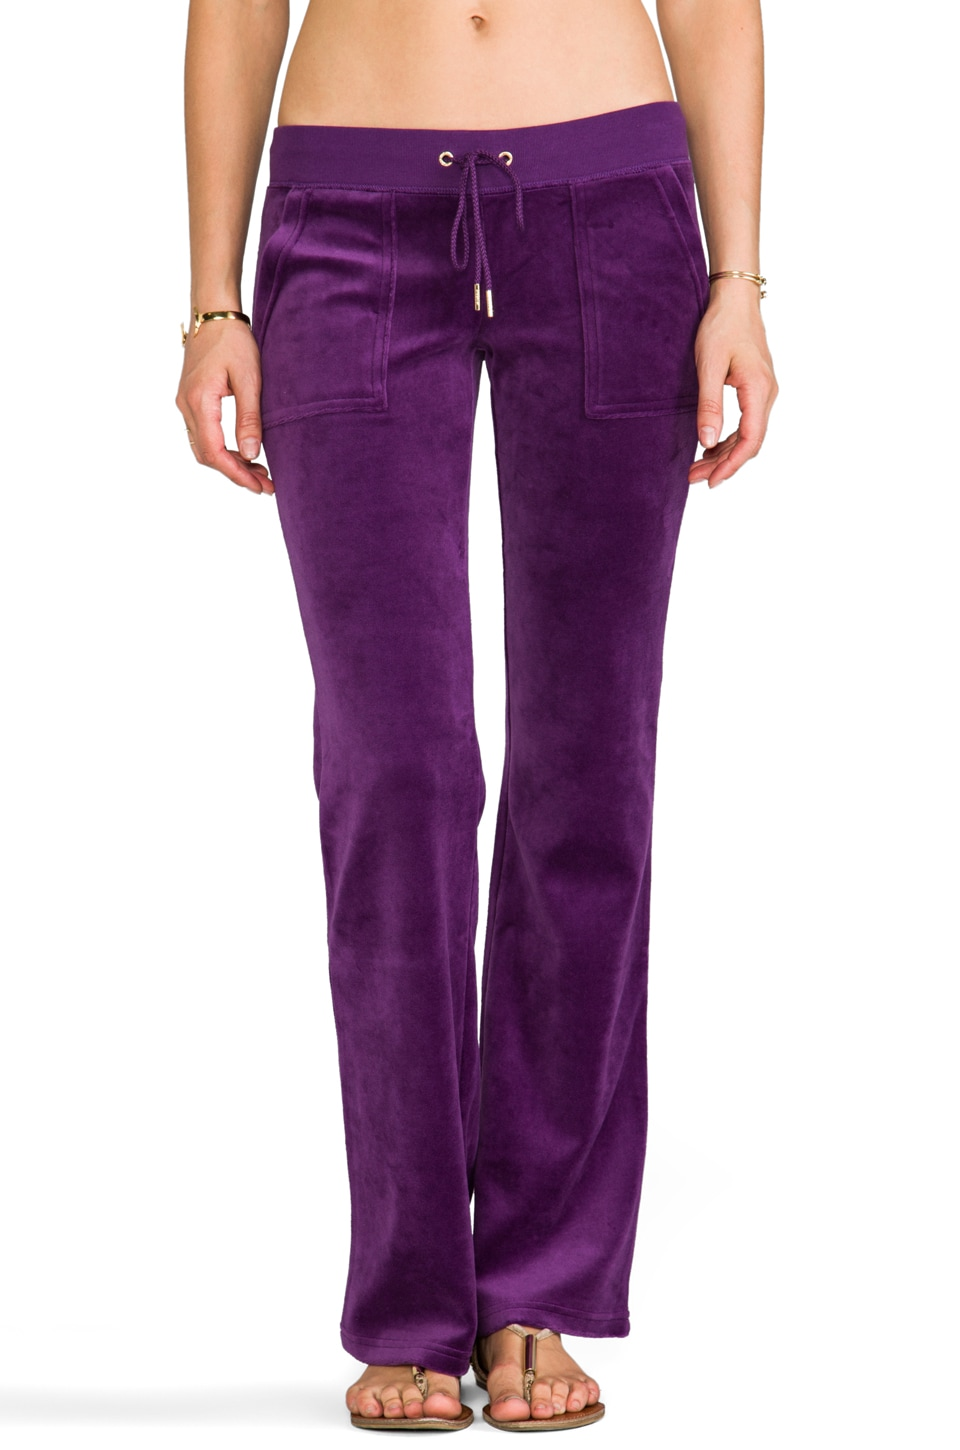 Juicy Couture J Bling Bootcut Pant in Jeweled Plum